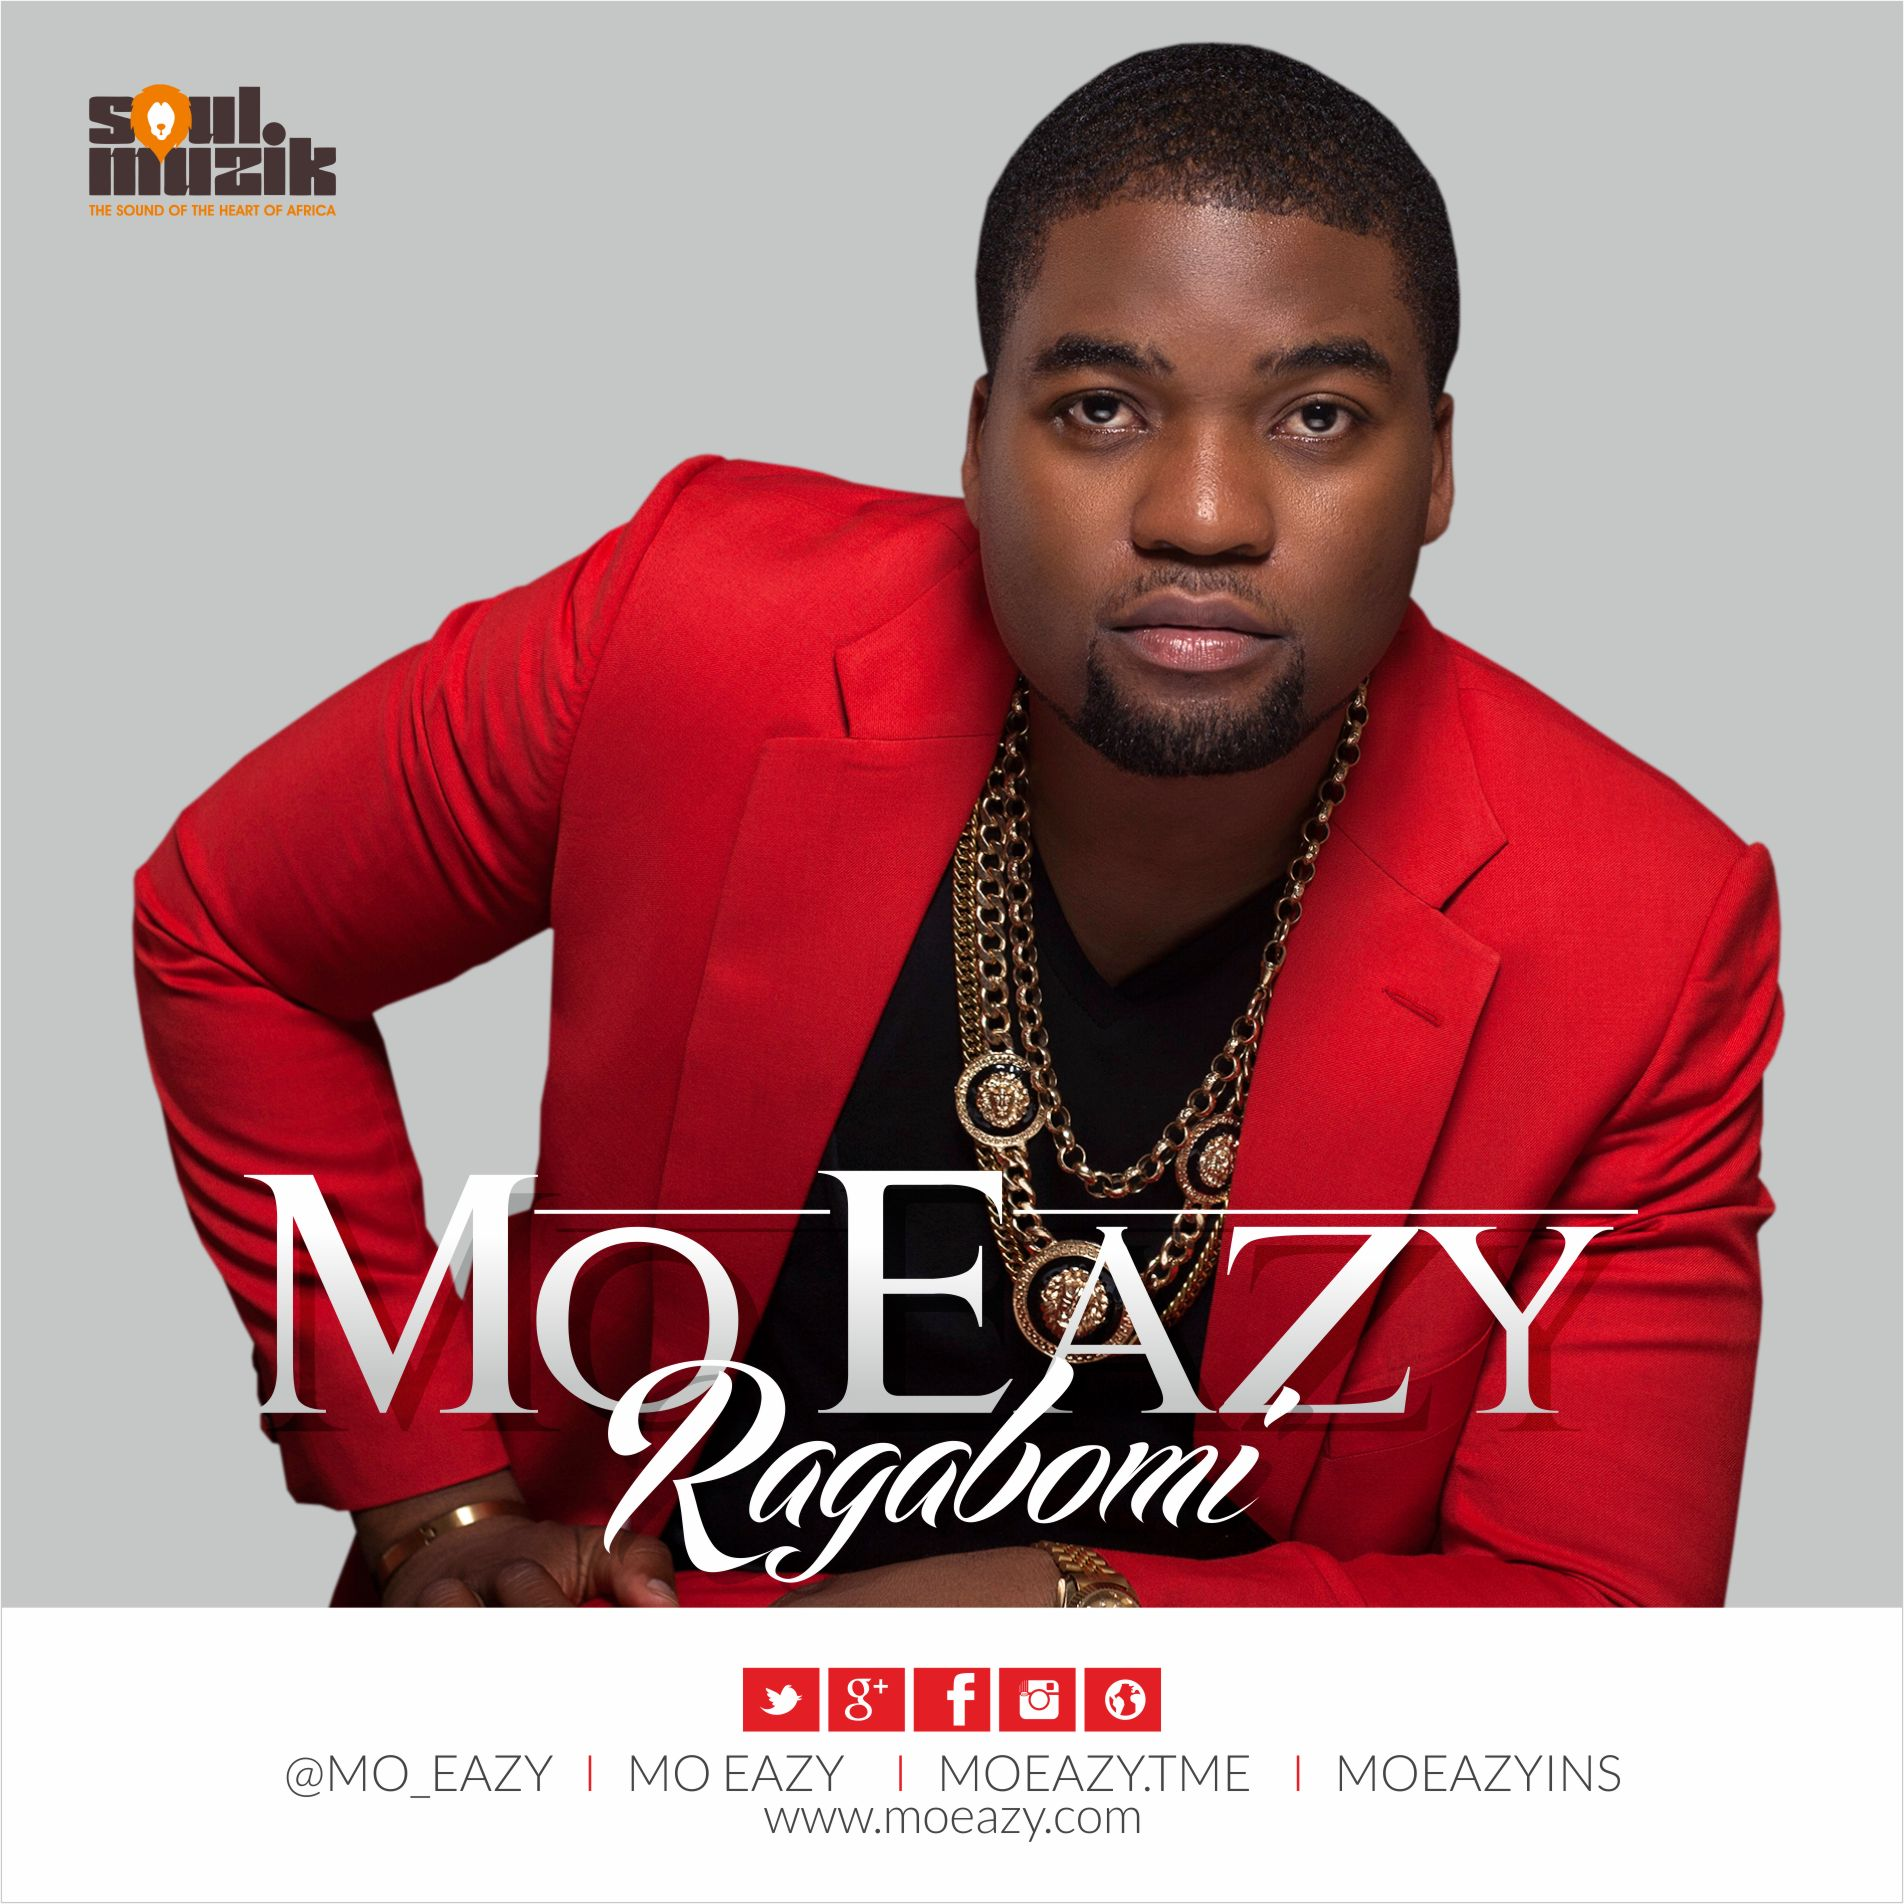 Ragabomi Moeazy Single Release Online Art 7